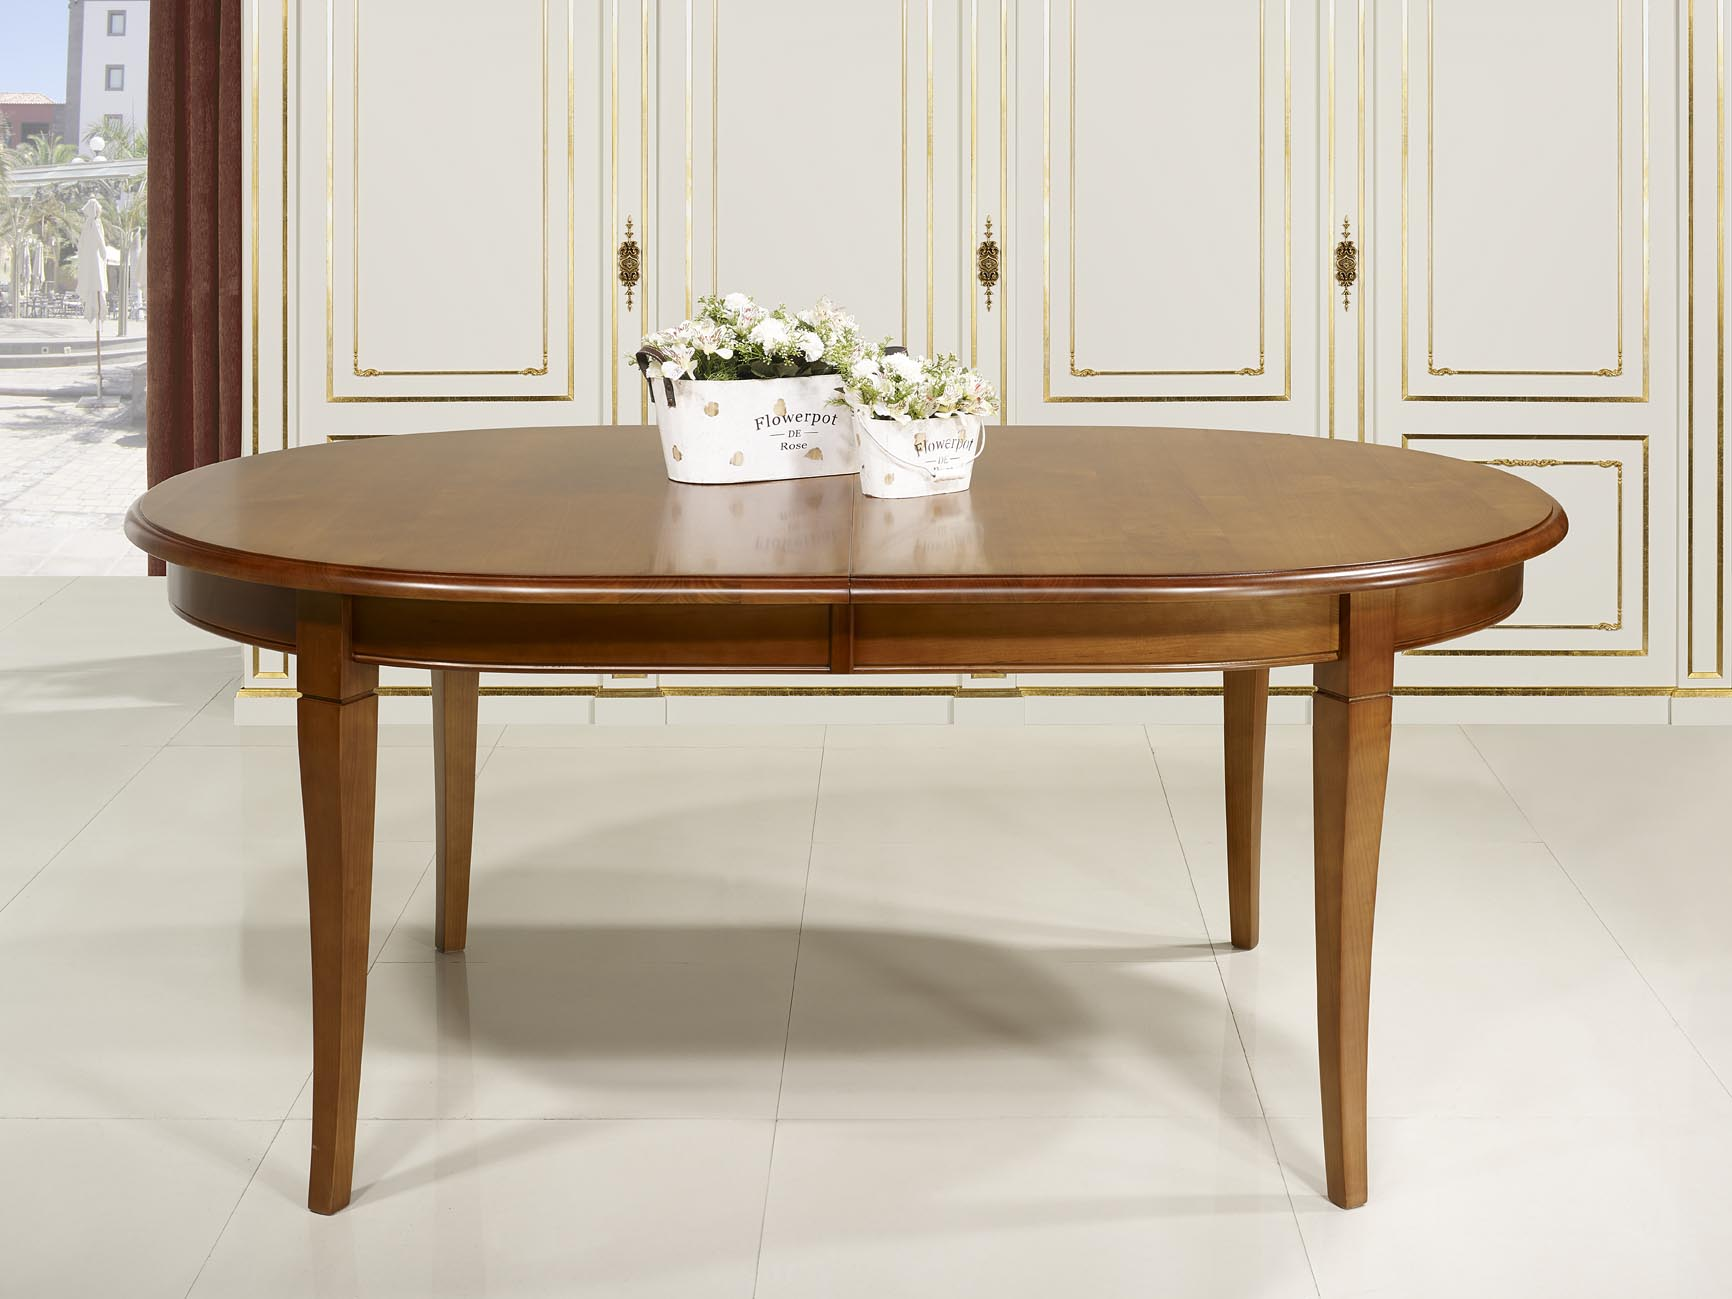 Table ovale 180 120 en merisier massif de style louis for Table ovale allonge